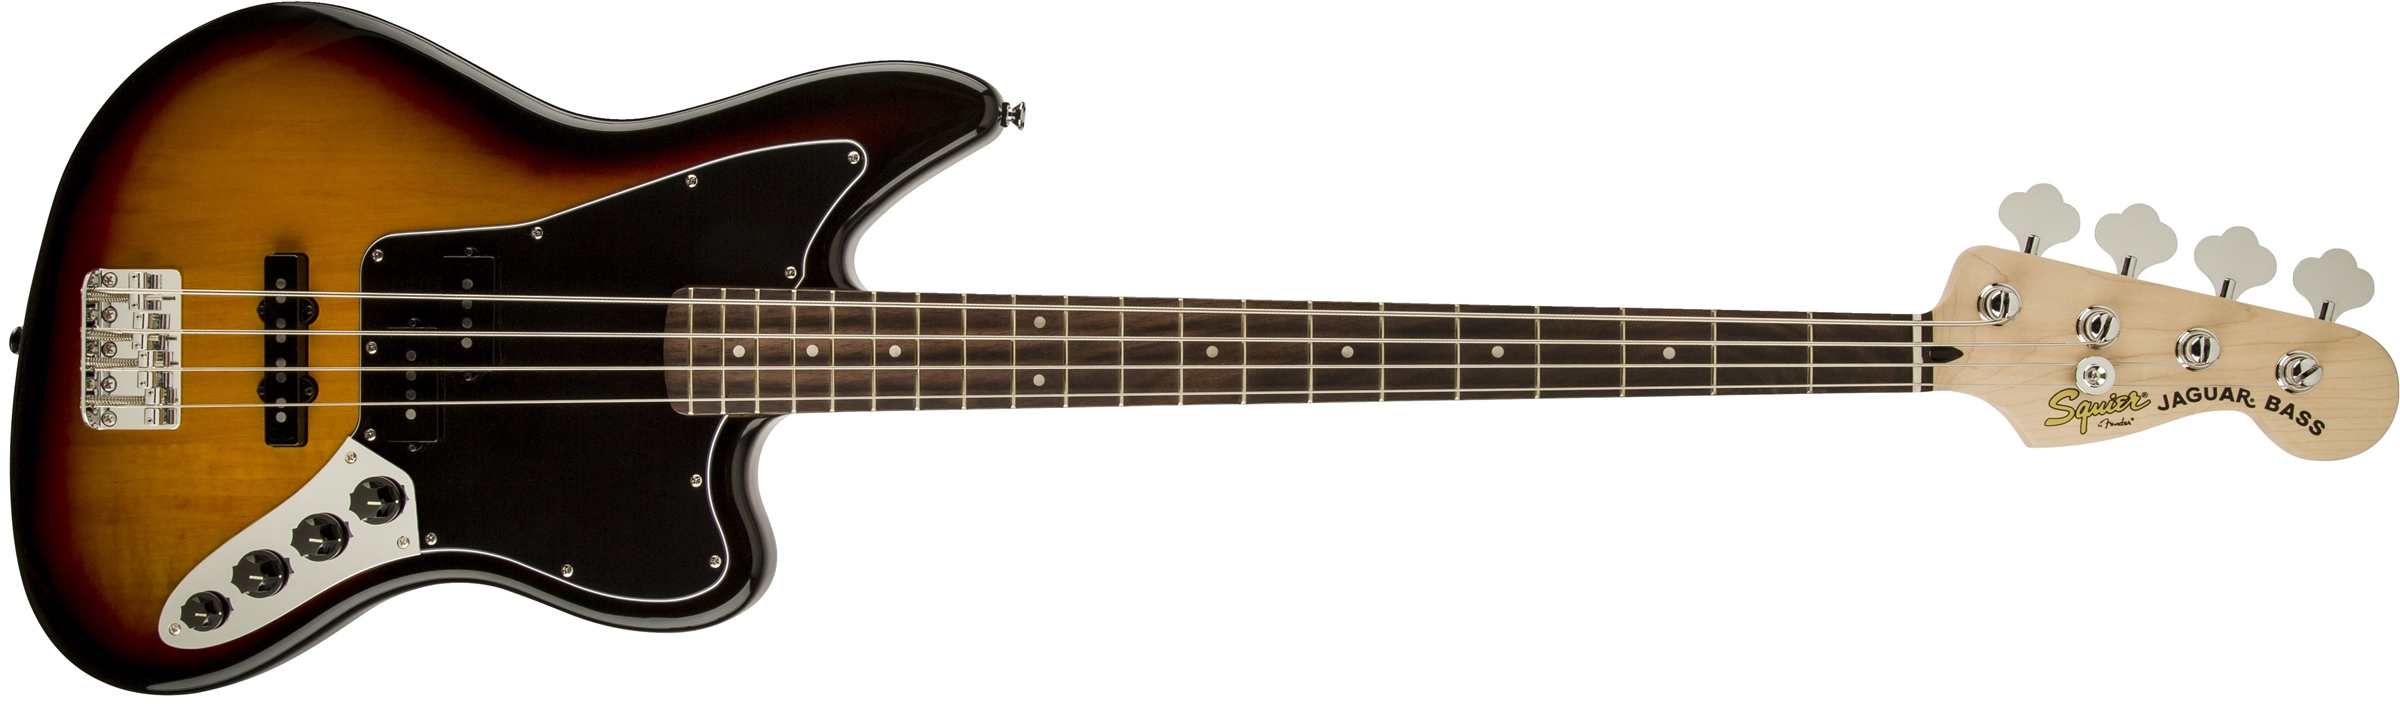 Squier 174 Vintage Modified Jaguar 174 Bass Special Rosewood